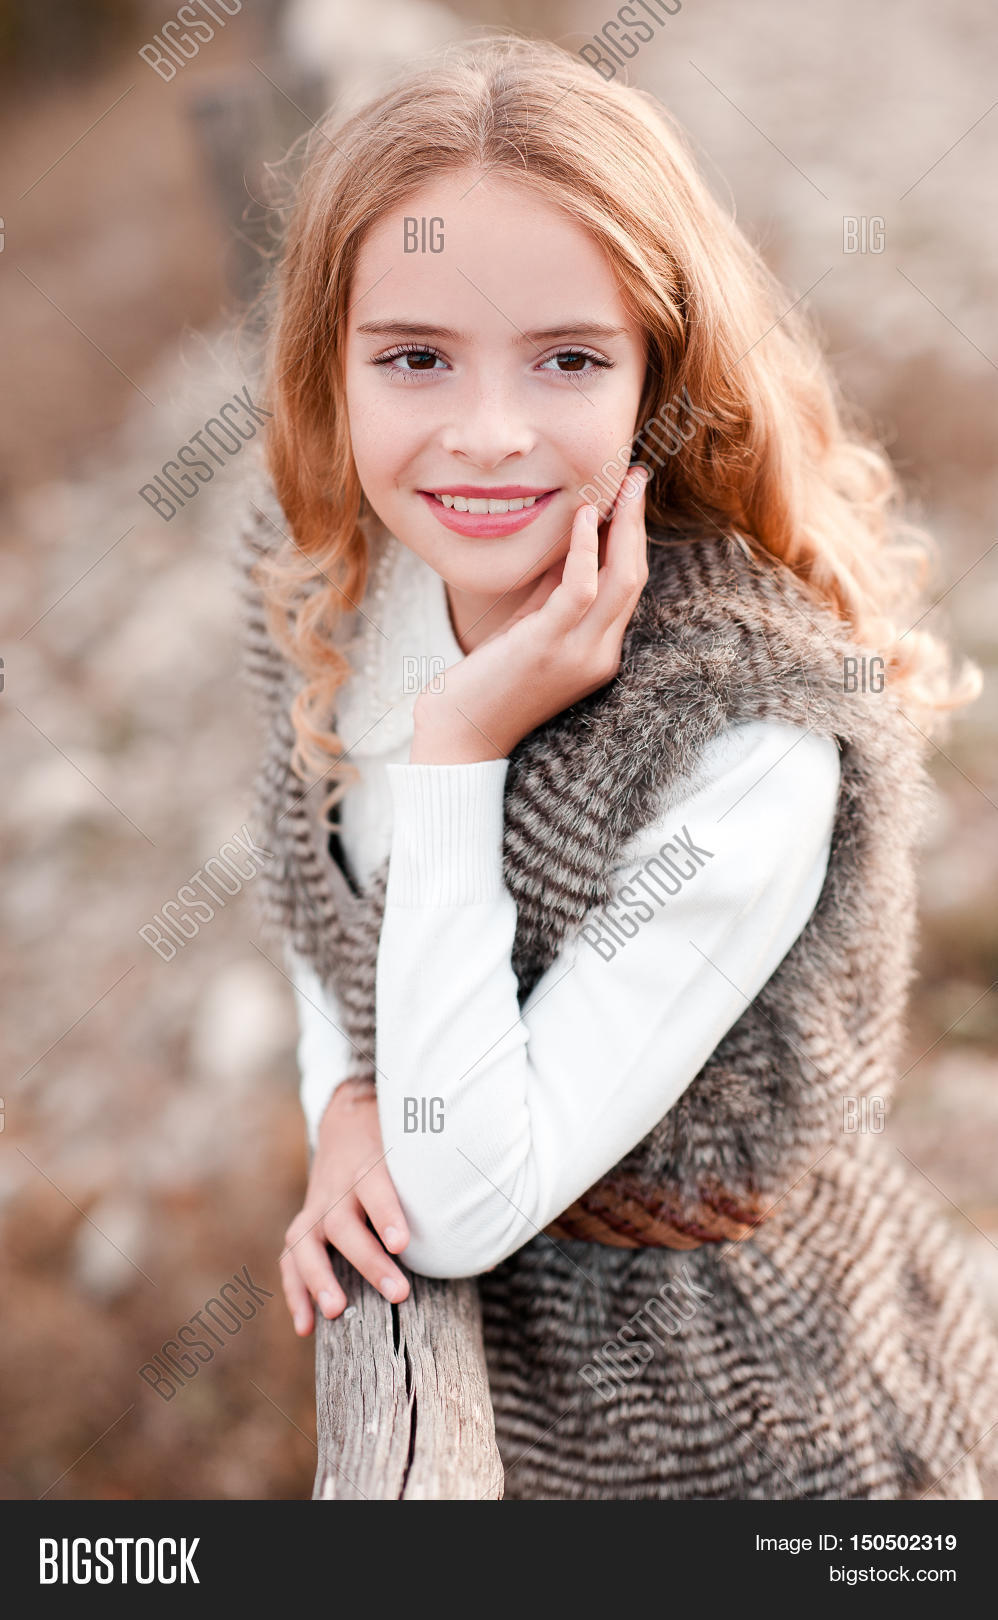 Smiling Blonde Kid Girl 13-14 Year Image & Photo